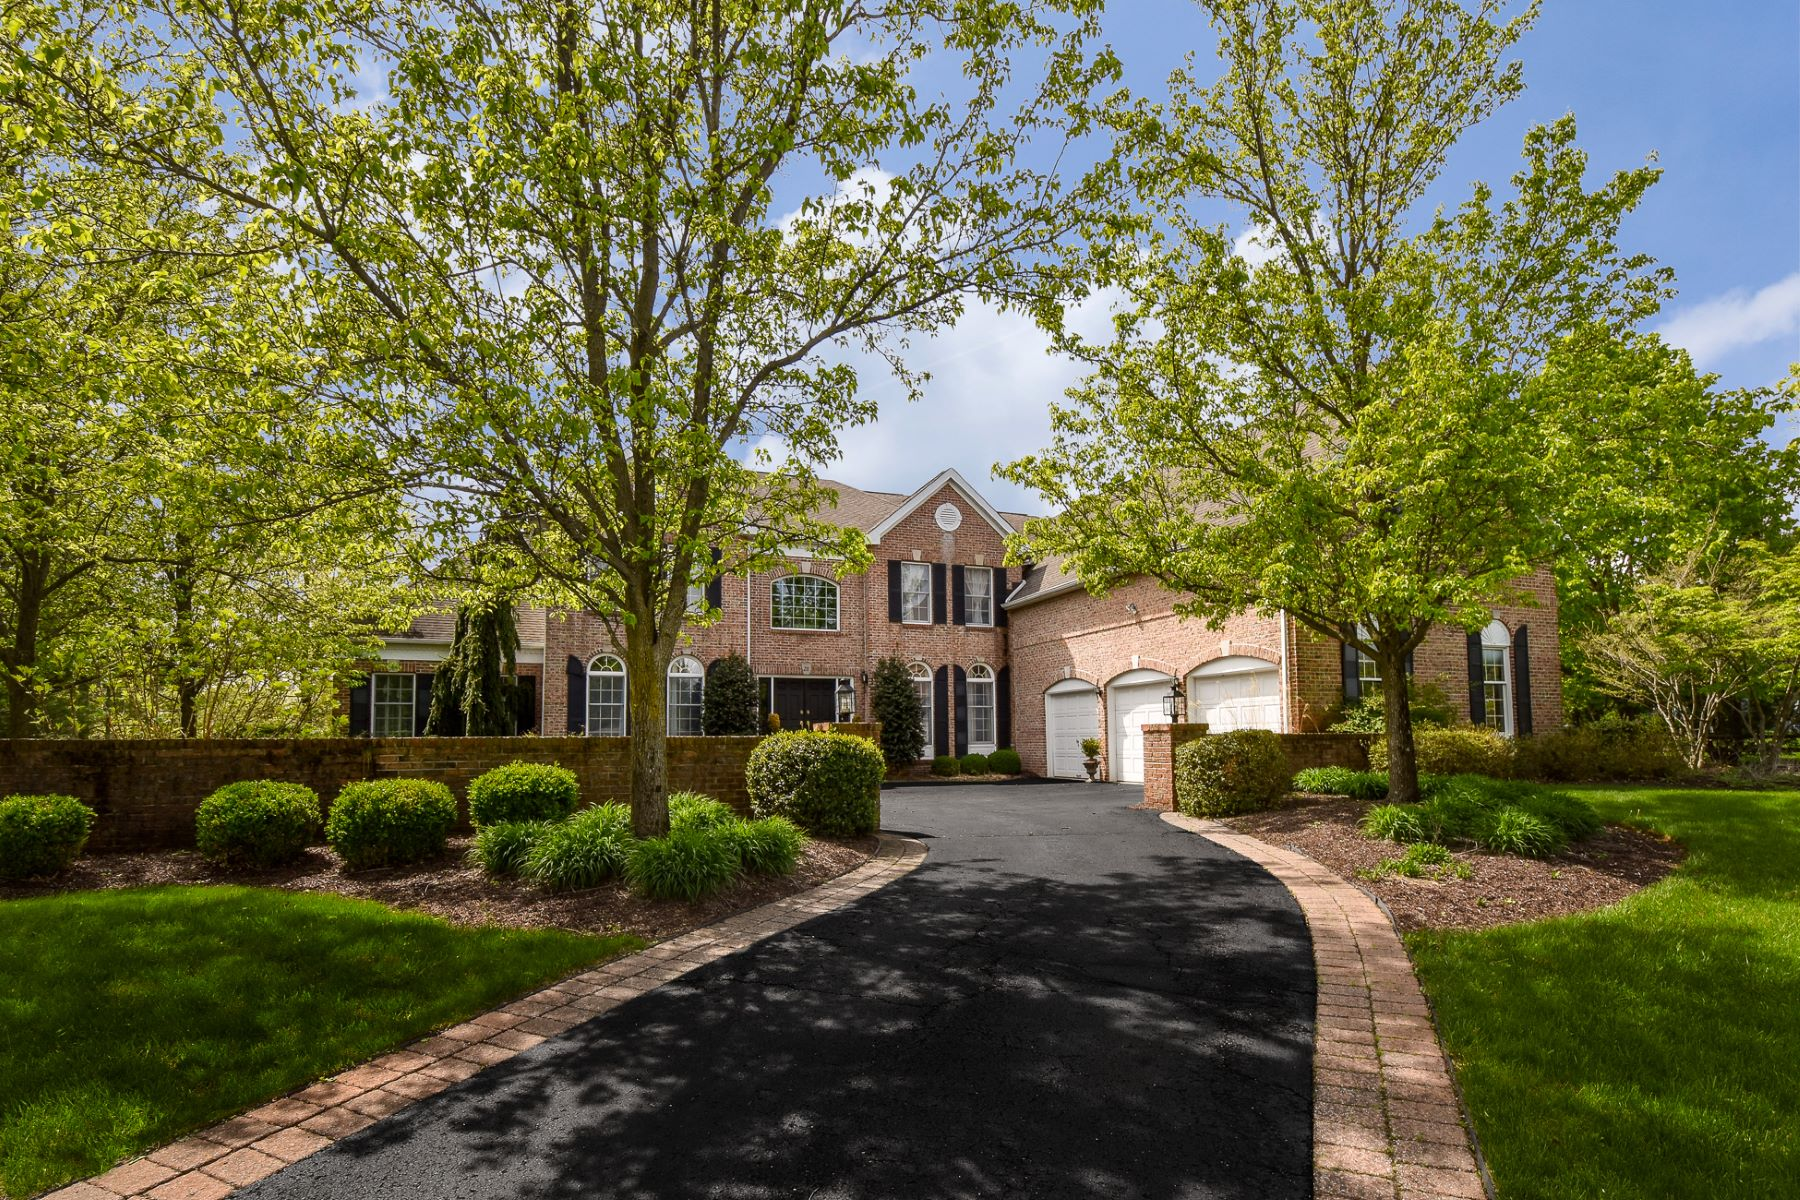 Single Family Homes for Active at Nothing Short Of Exquisite in Bedens Brook Estates 28 Green Meadow Road Skillman, New Jersey 08558 United States